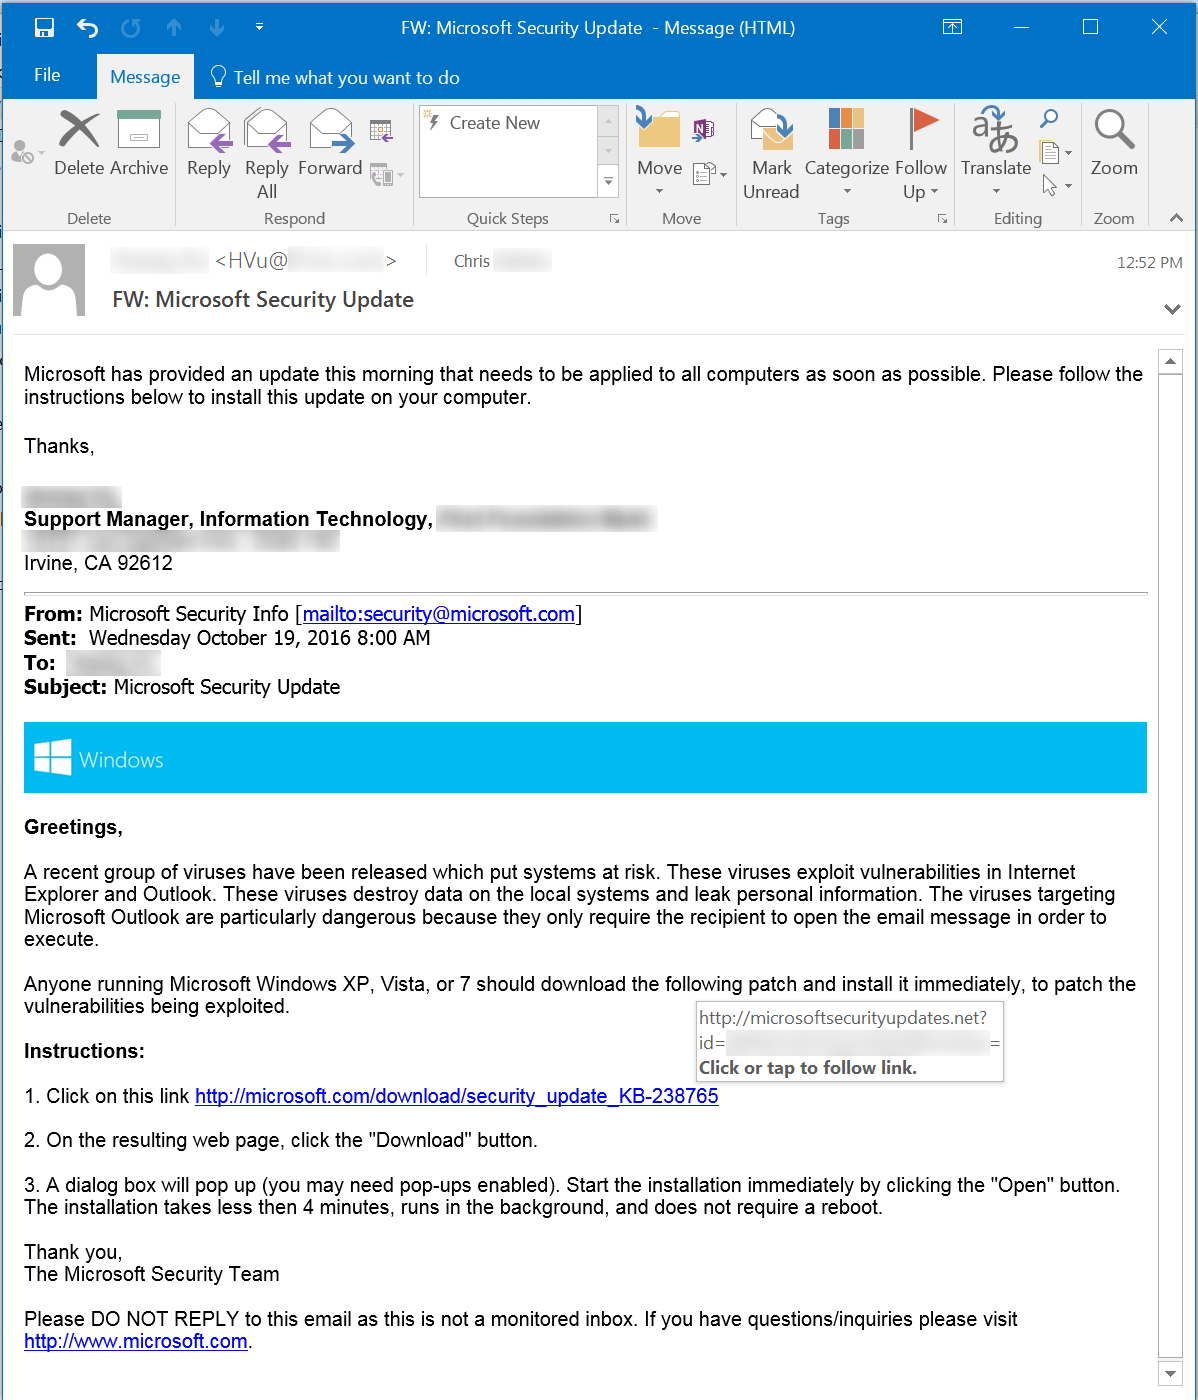 MS Update Phishing Email